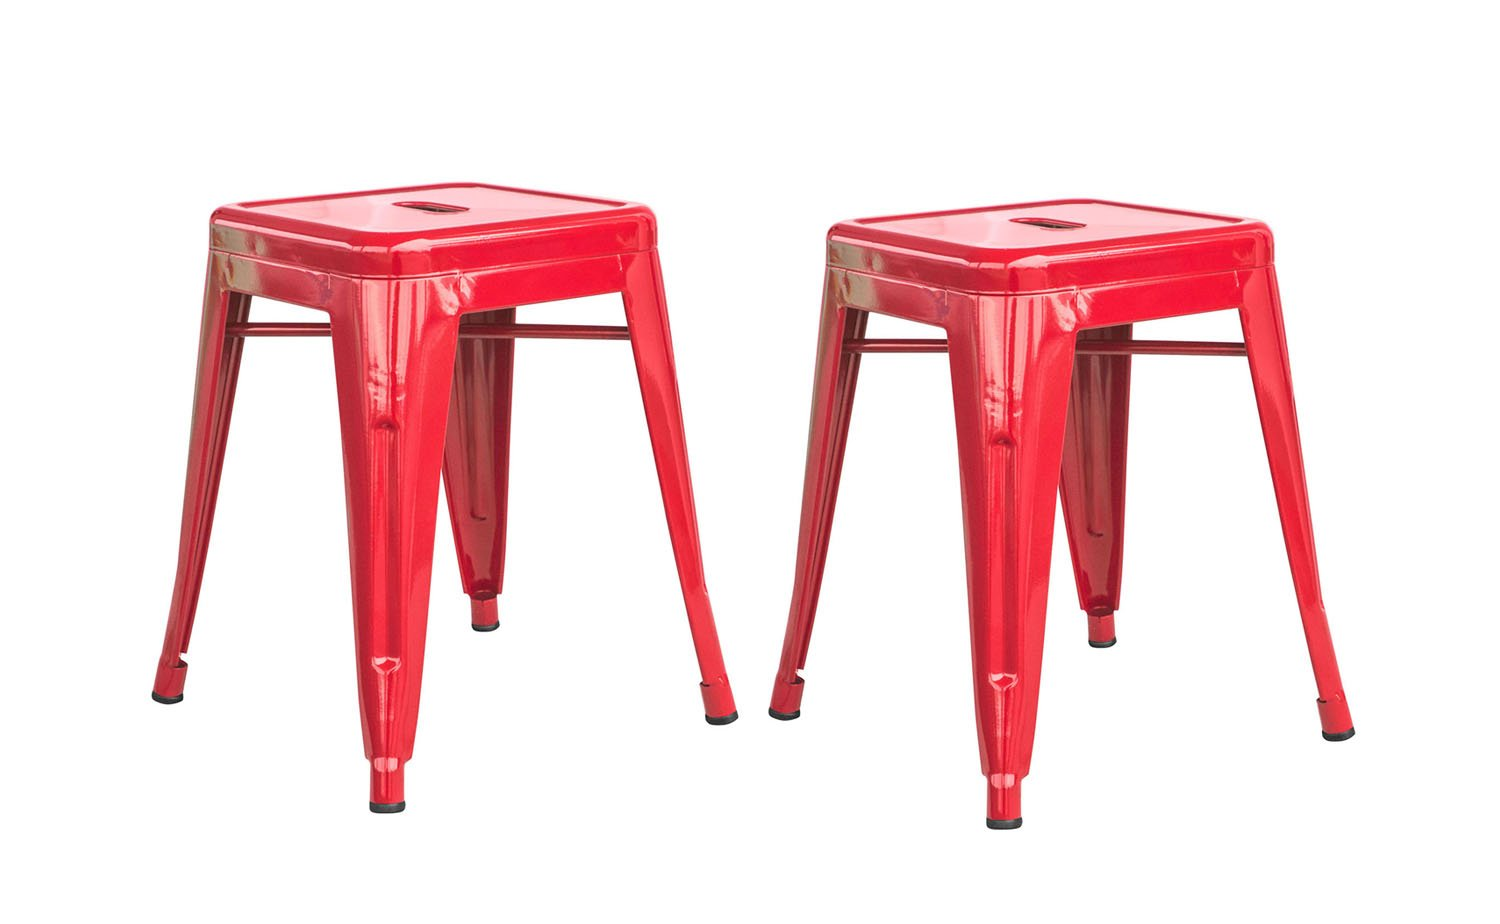 Buffalo Tools 18 in. Metal Bar Stool in Loft Red - Set of 2 by Buffalo Tools